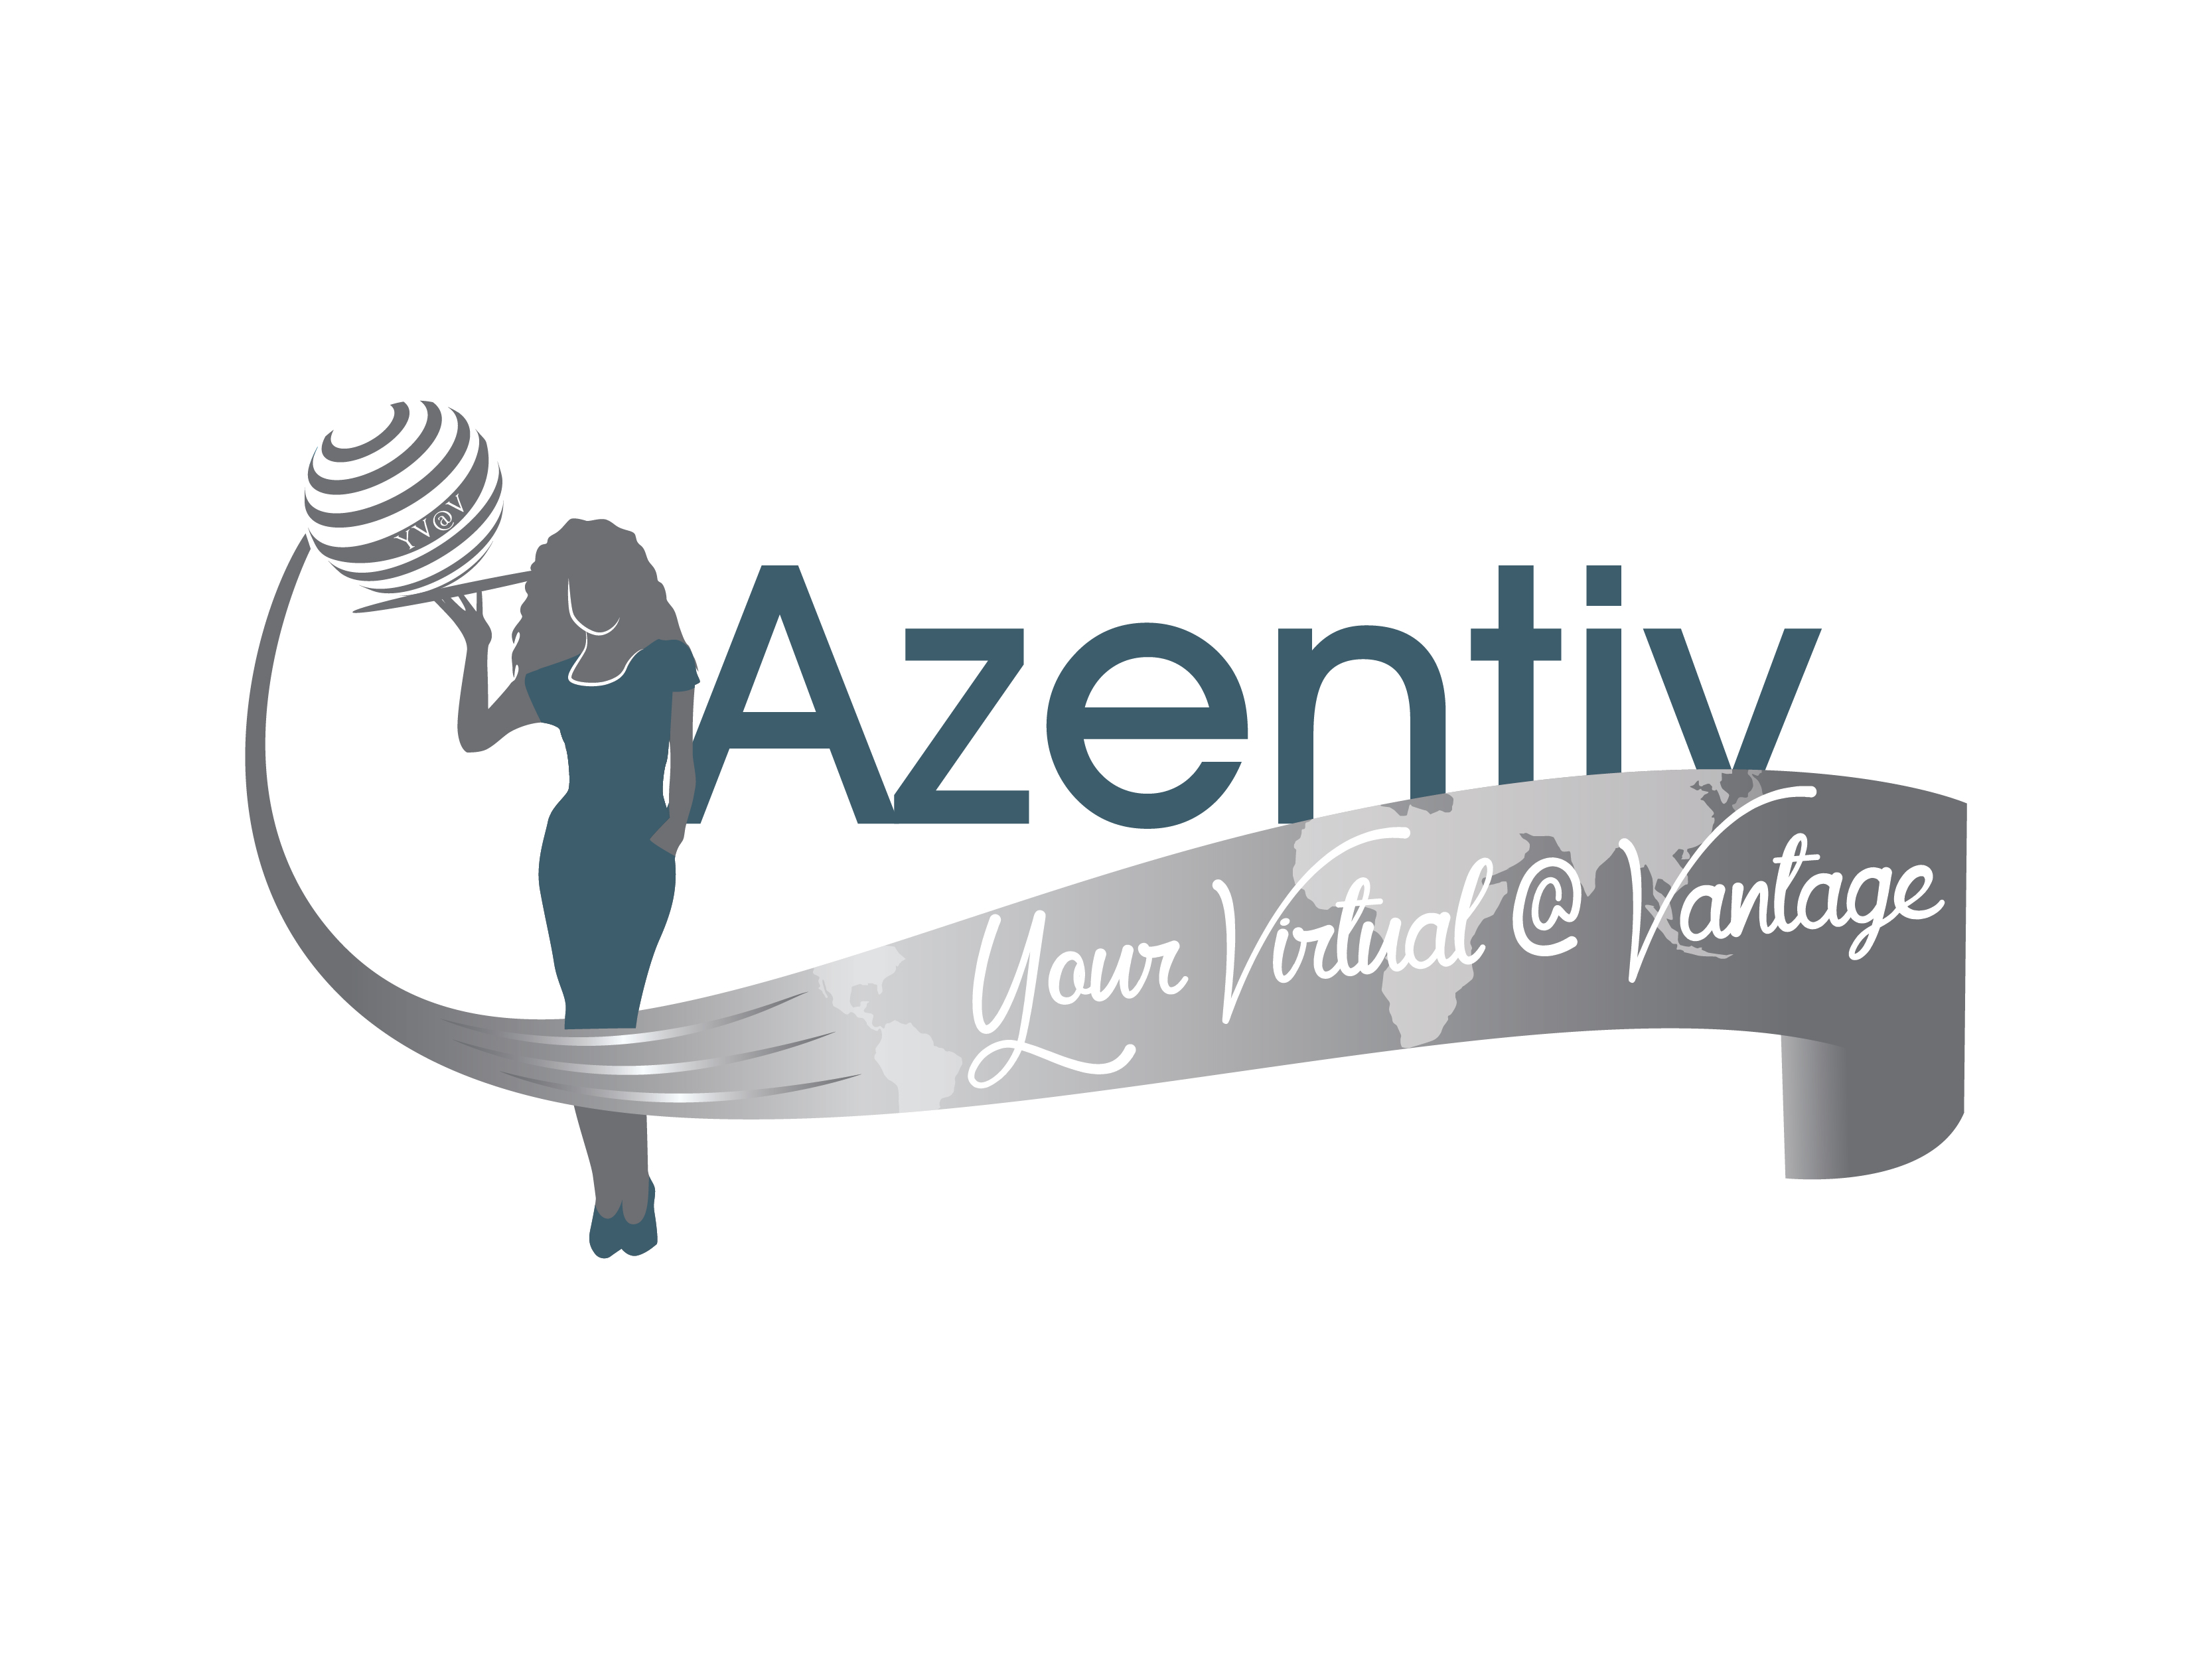 AZENTIV- Your Virtual @ Vantage